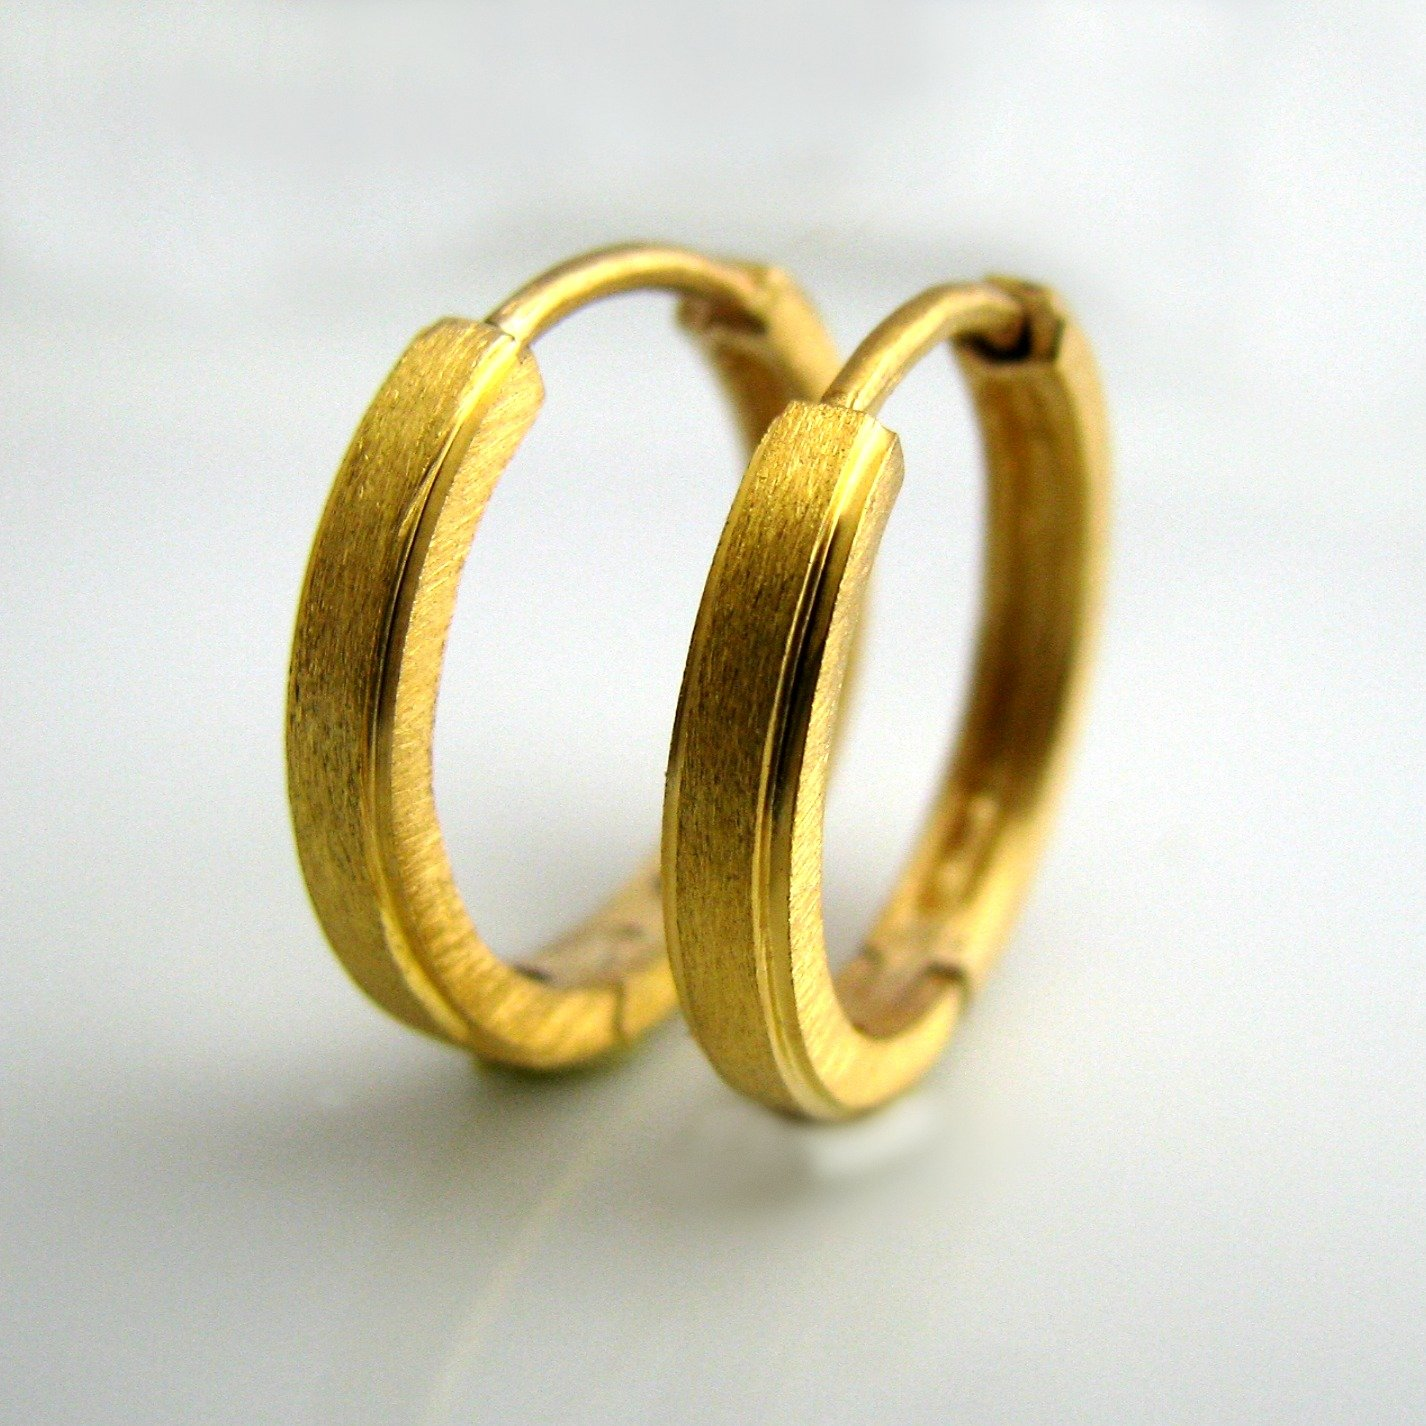 precious real gold with without pin stud and solid metal earring ring stones